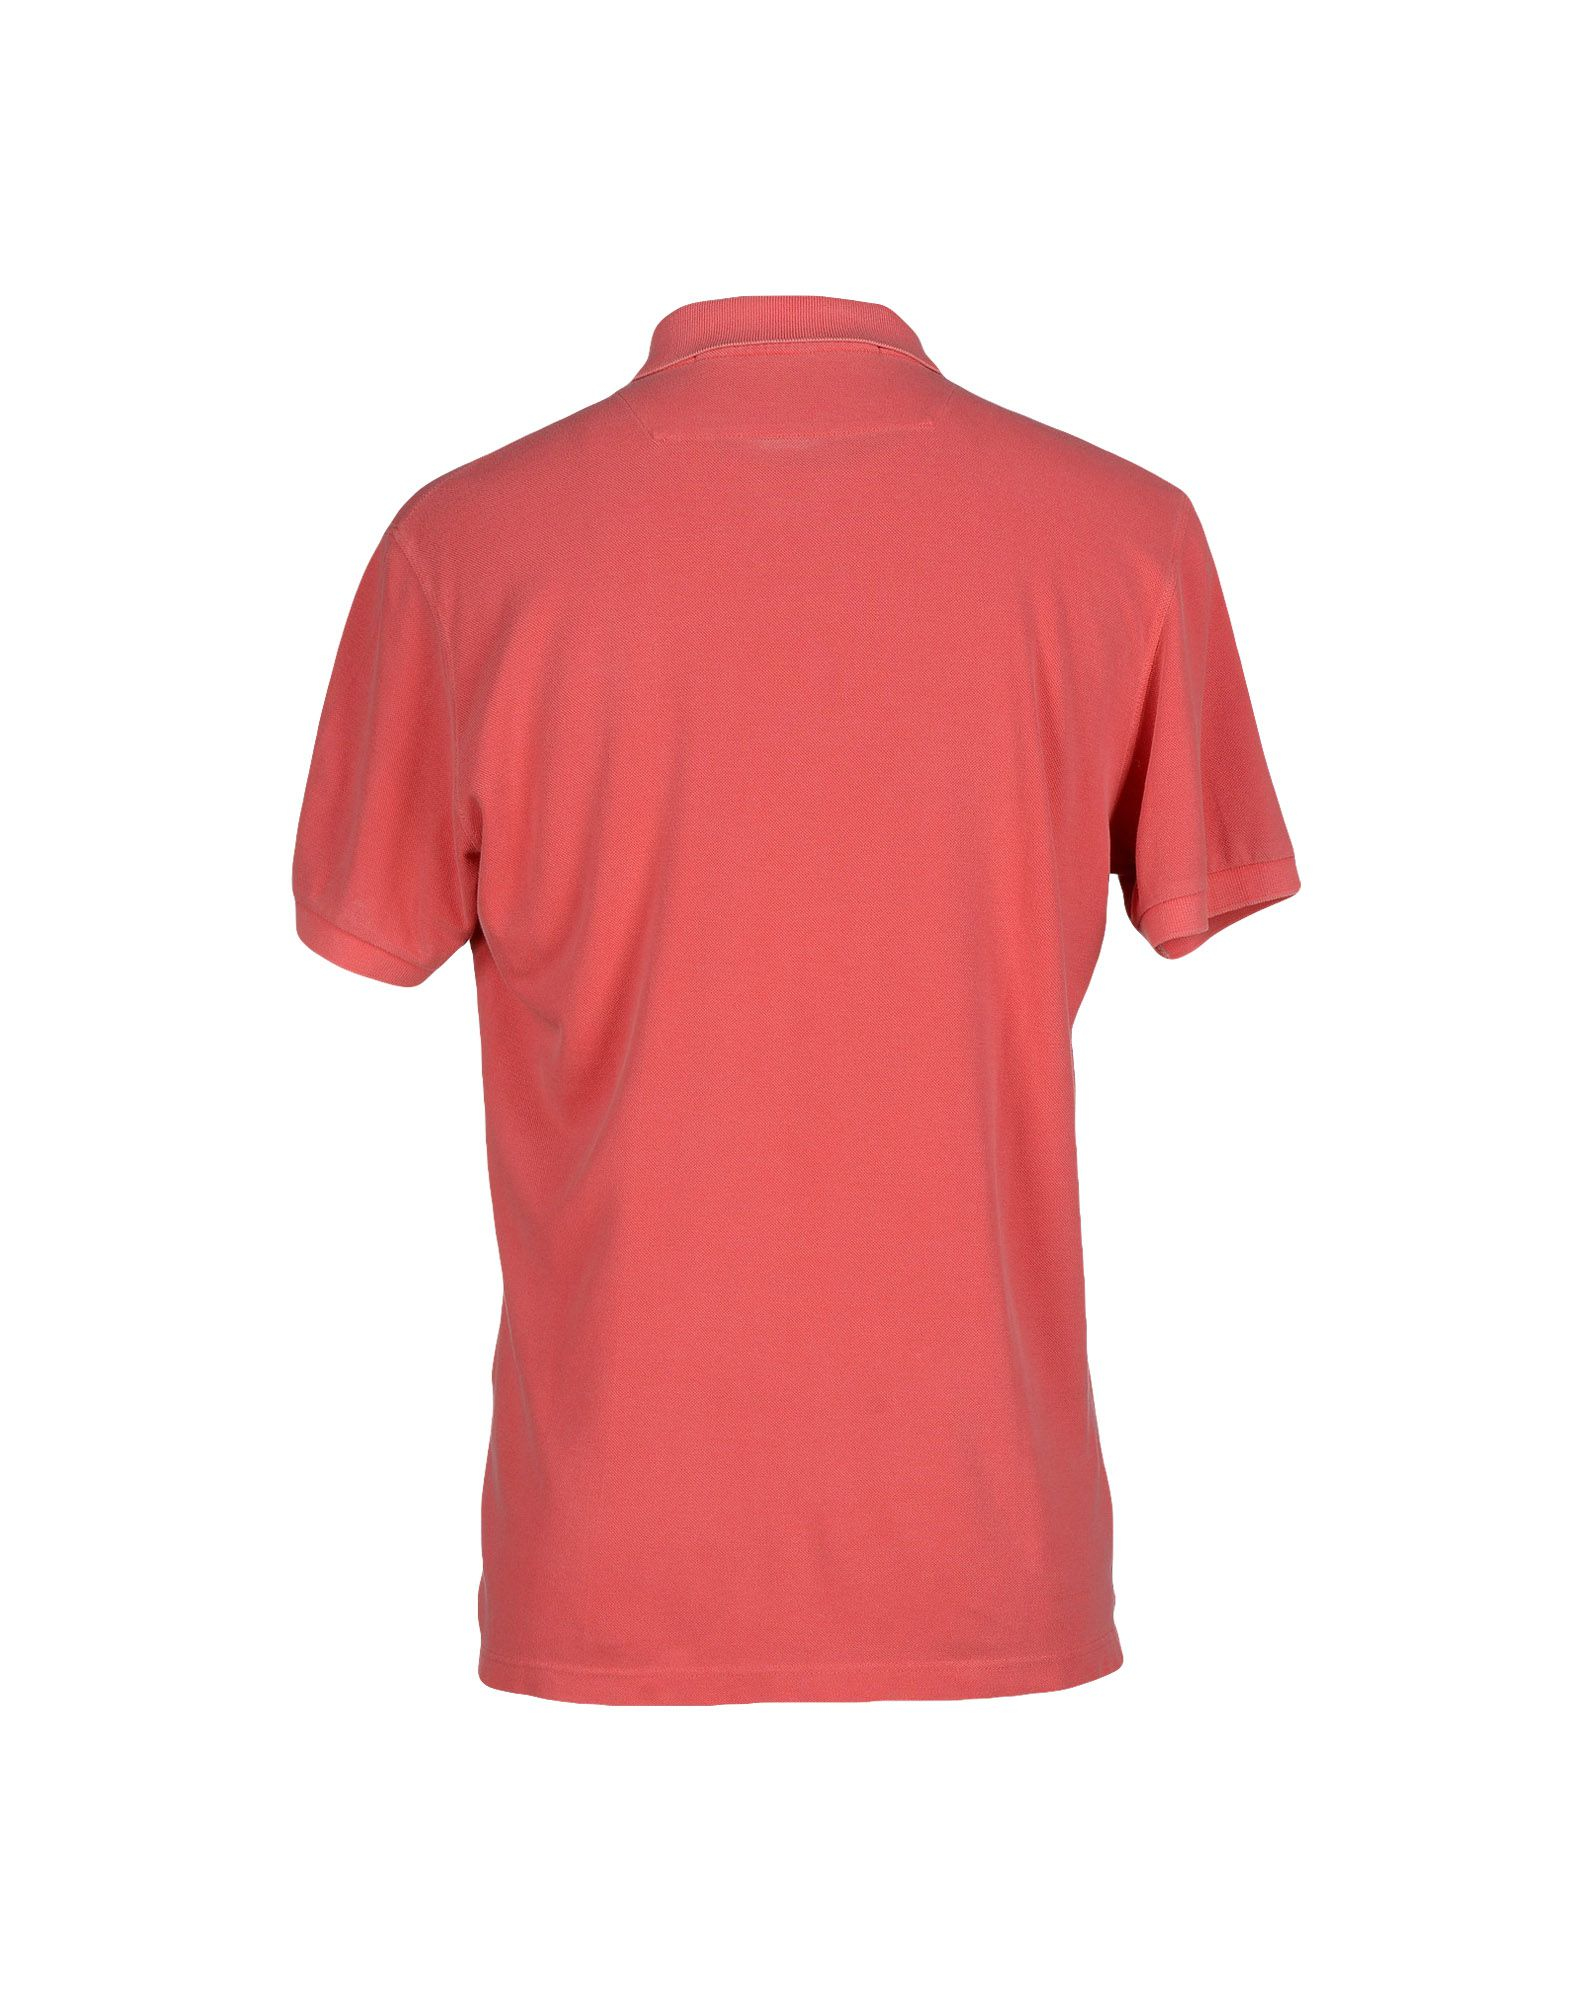 Pirelli pzero polo shirt in pink for men coral lyst for Coral shirts for guys